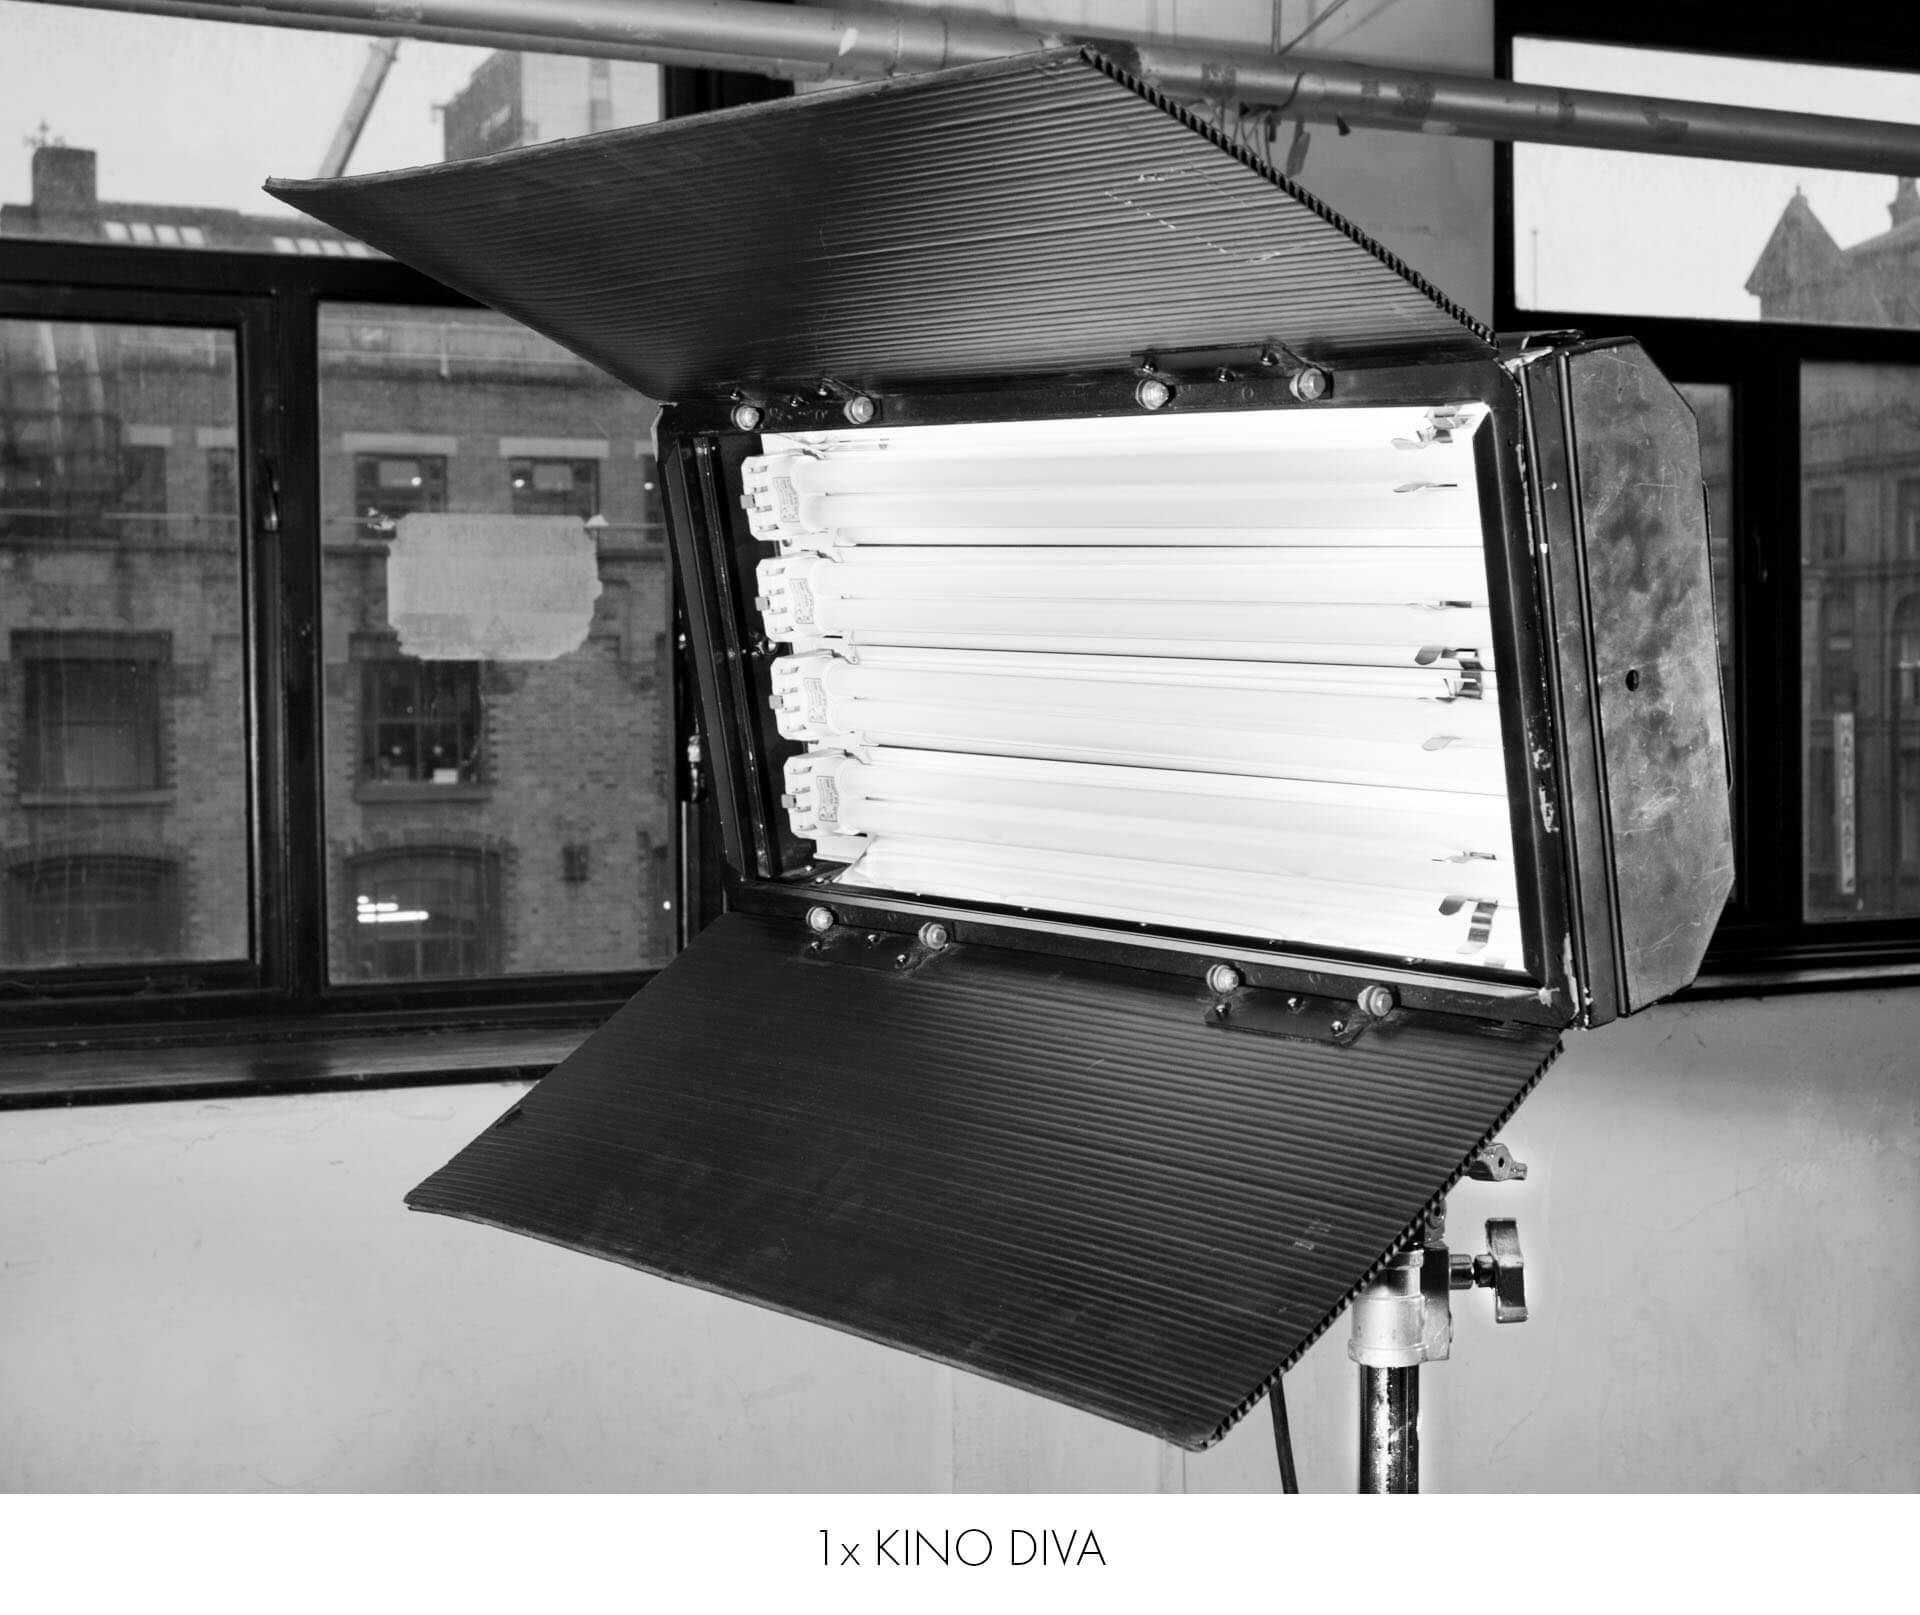 A kino diva and other continuous lighting included in hire costs